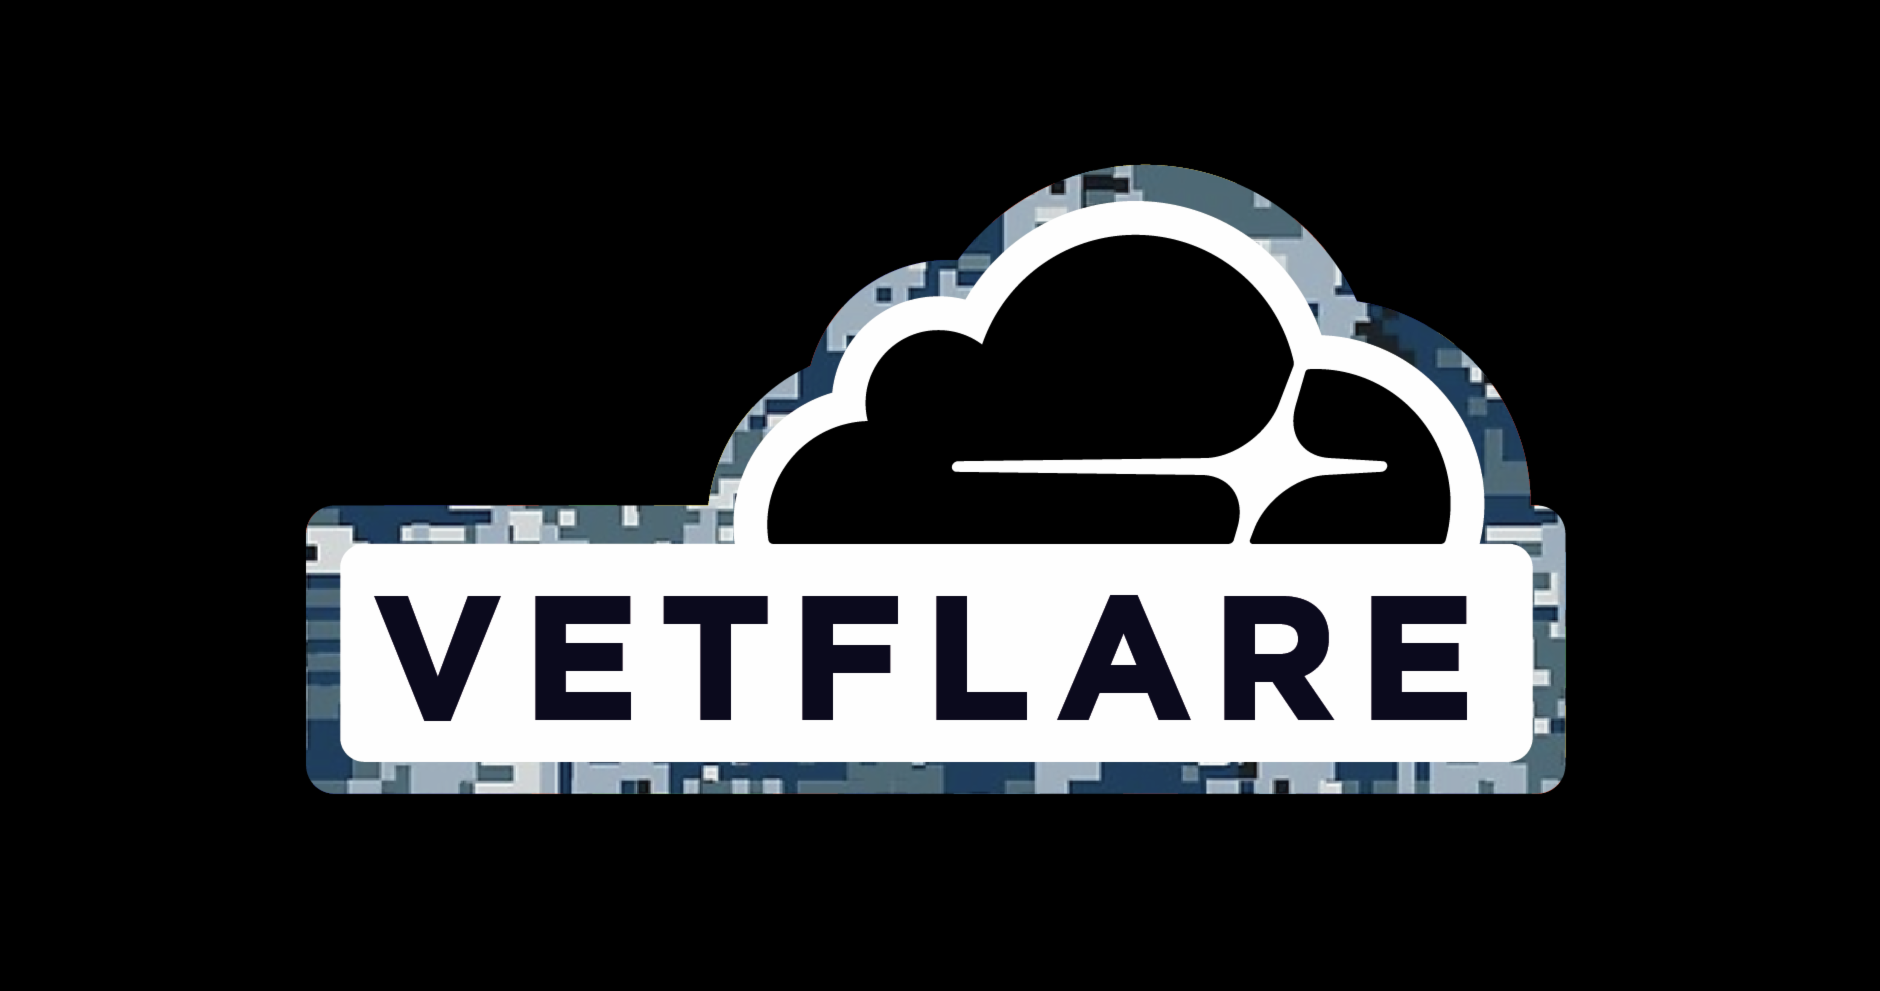 Vetflare, Cloudflare's Military Veteran Employee Group Launches